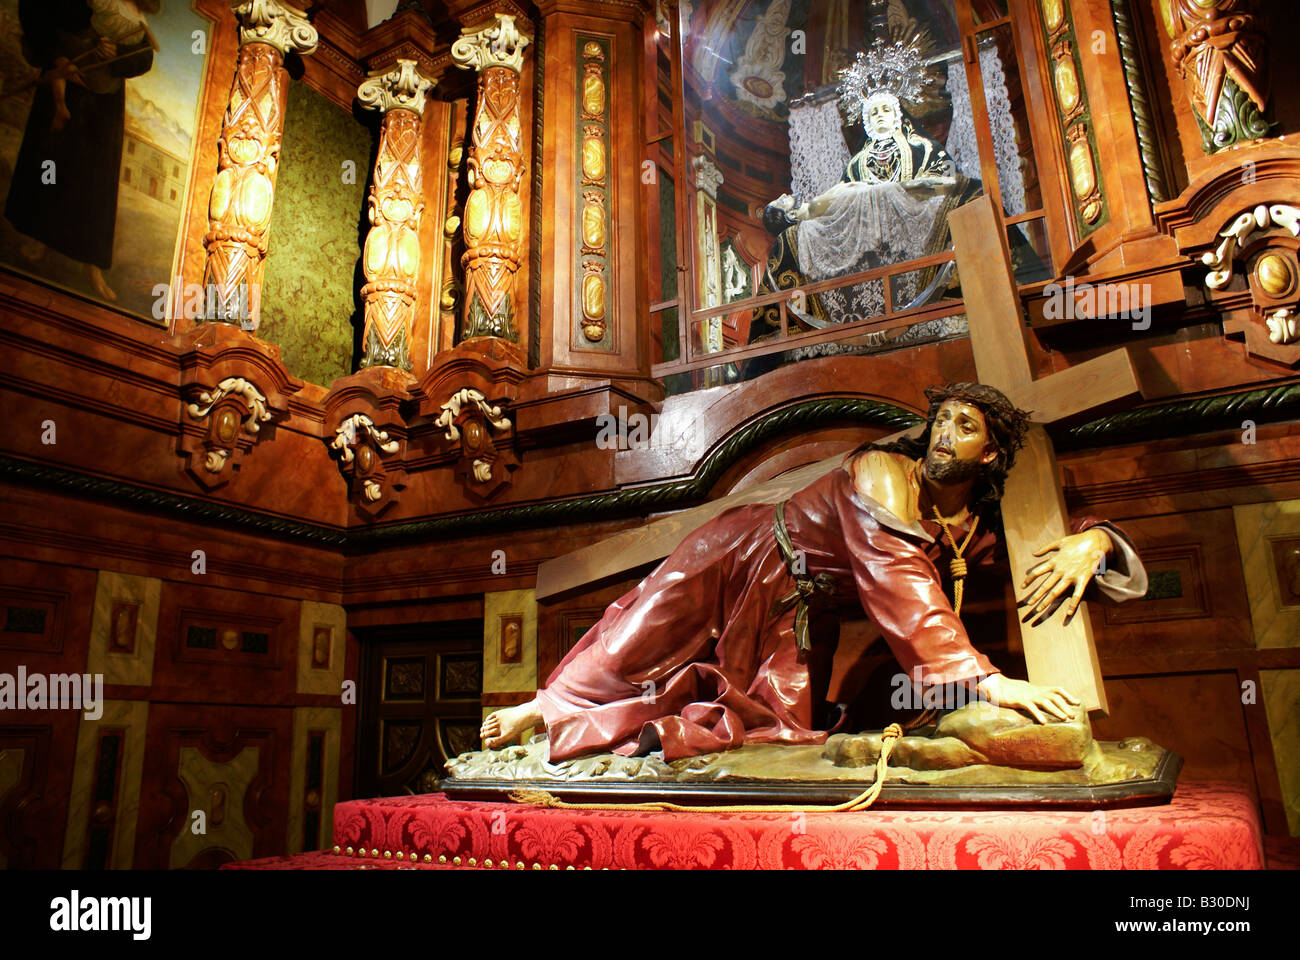 Wooden Sculpture Of Jesus In A Church Madrid